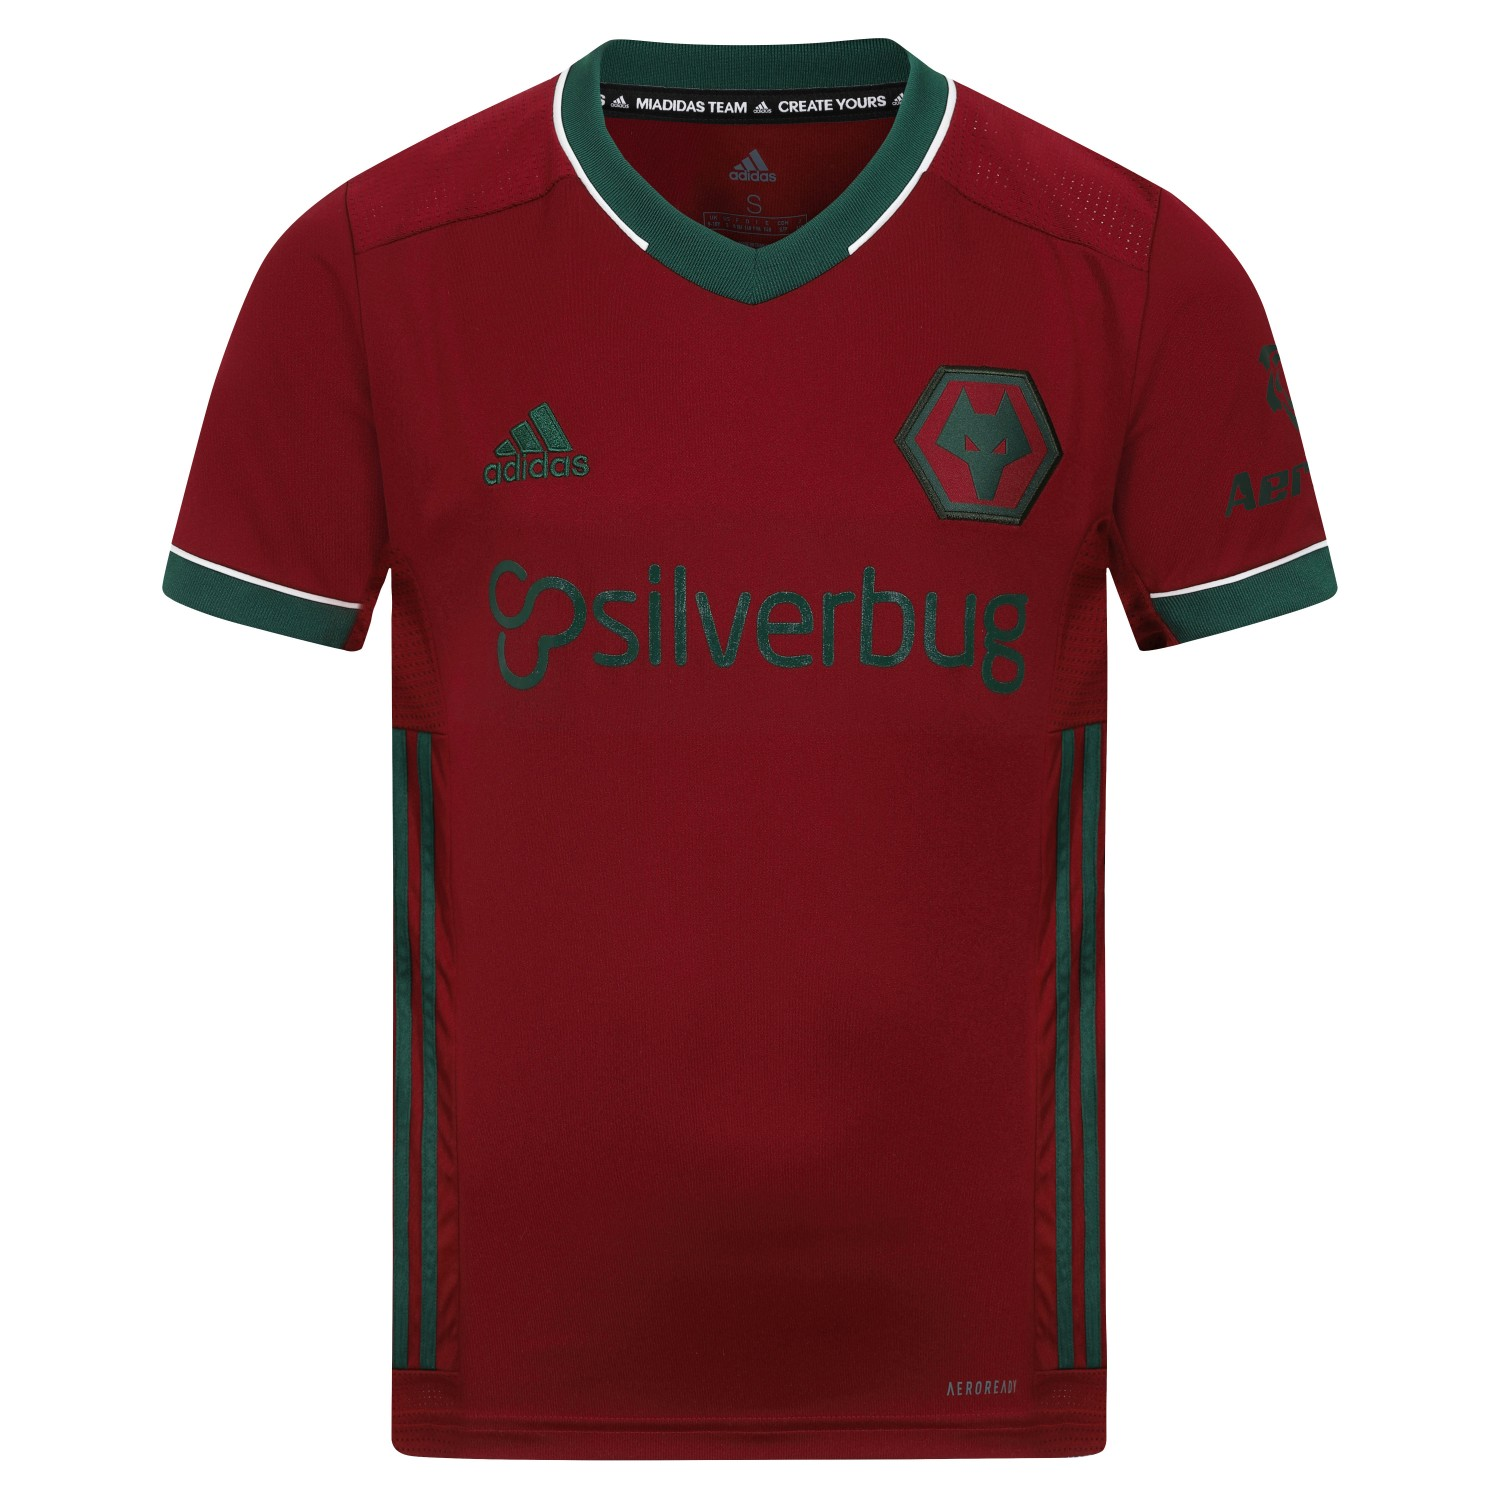 2020-21 Wolves 3rd Shirt - Junior This Wolves Shirt stands out from the crowd with a Burgundy and Green contrasting colour way Throw it on to stand with our team home or away.The soft fabric displays a Green contrasting woven crest on the chest.This Wolves Shirt is made with recycled polyester to save resources and decrease emissions.Moves sweat away from your skin so you stay dry every step of the way so sweat but don´t sweat it.100% rec polyesterRibbed V-neckMoisture-absorbing AEROREADY